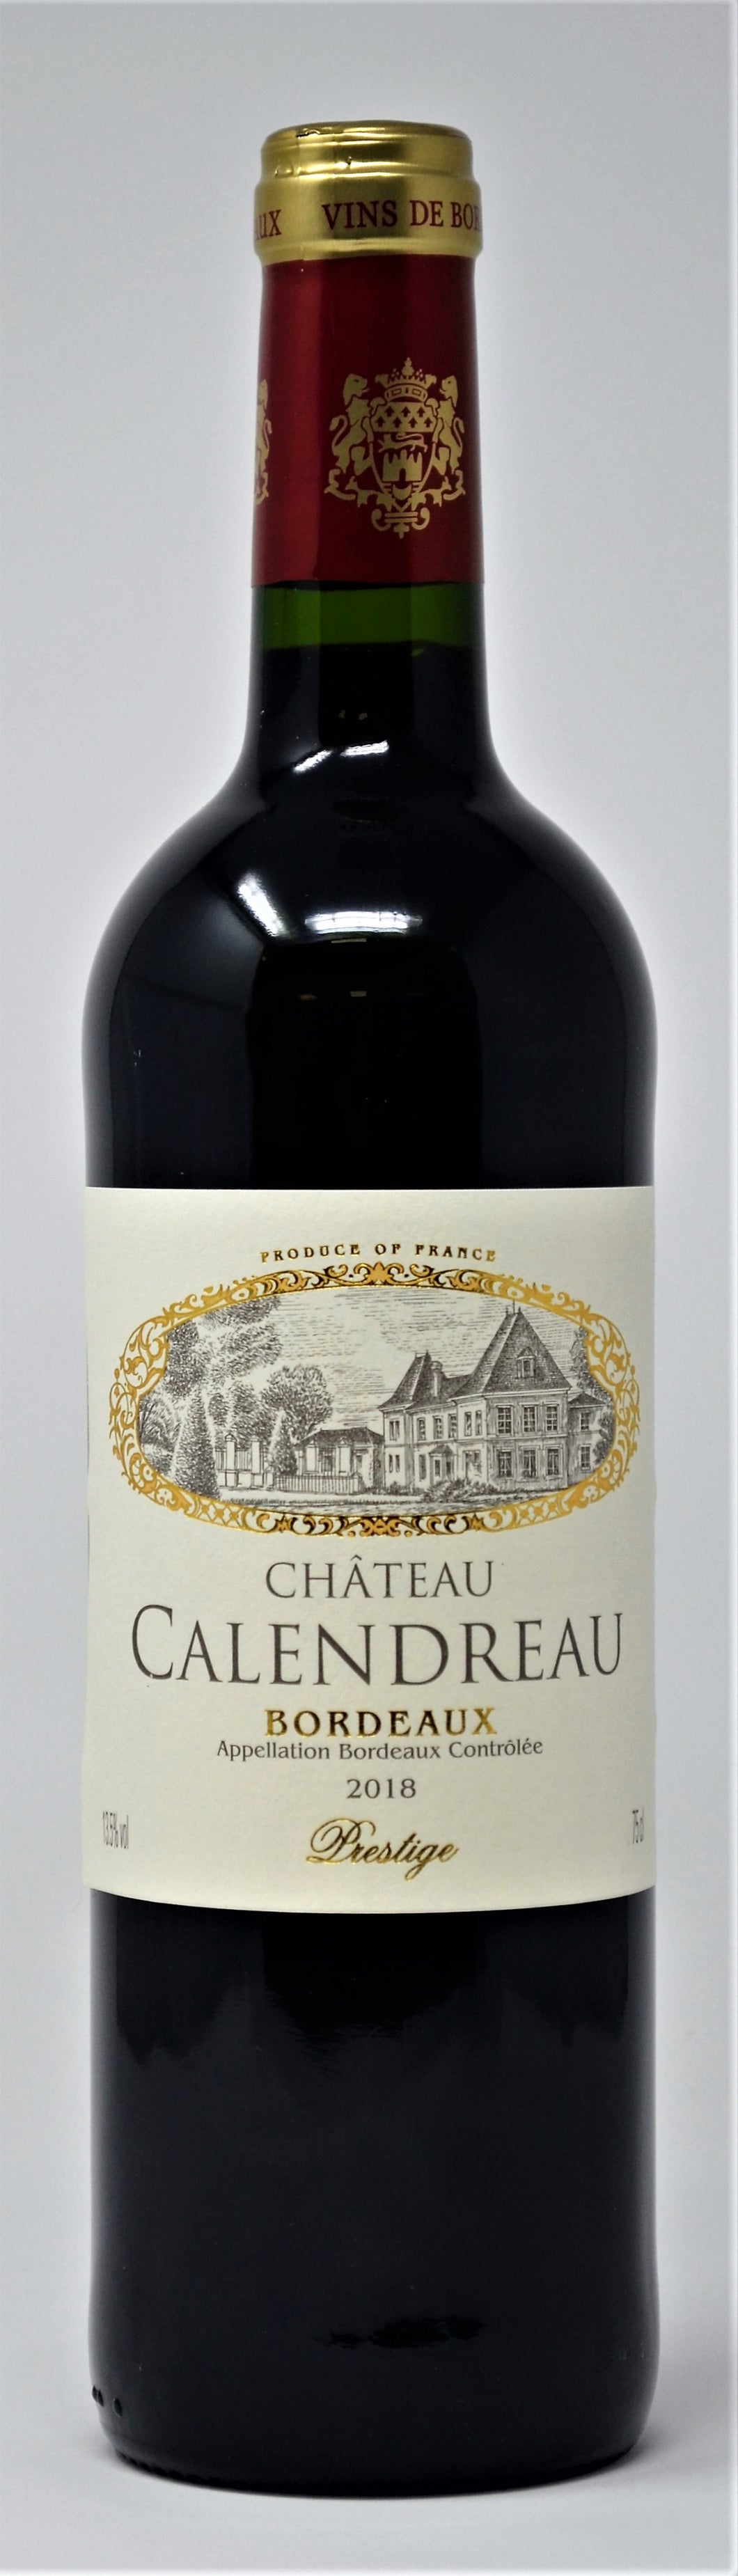 Chateau Calendreau Bordeaux 6bt case